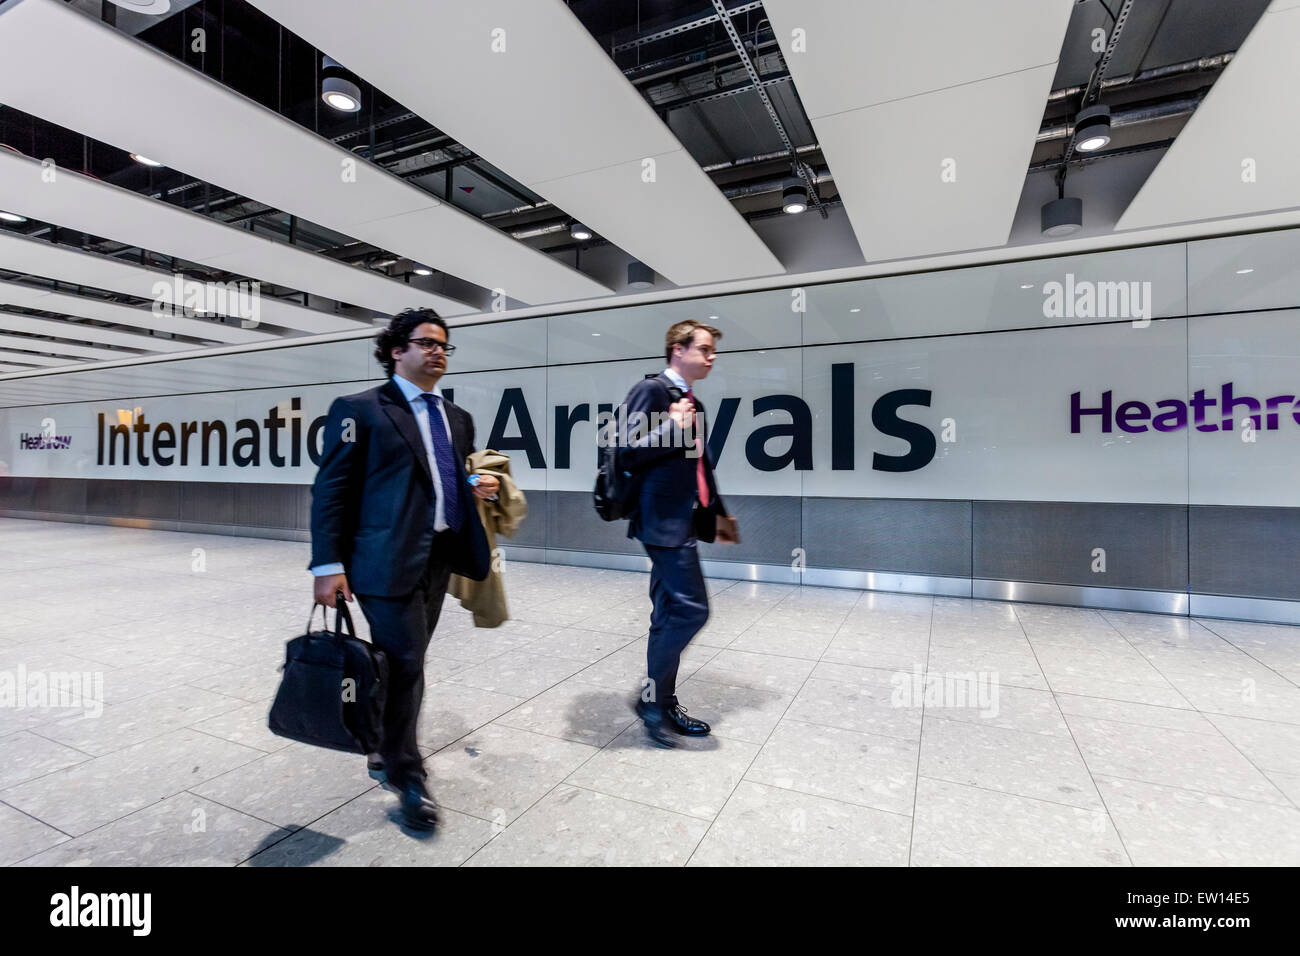 Business Travellers Arriving At Heathrow Airport, London, England - Stock Image